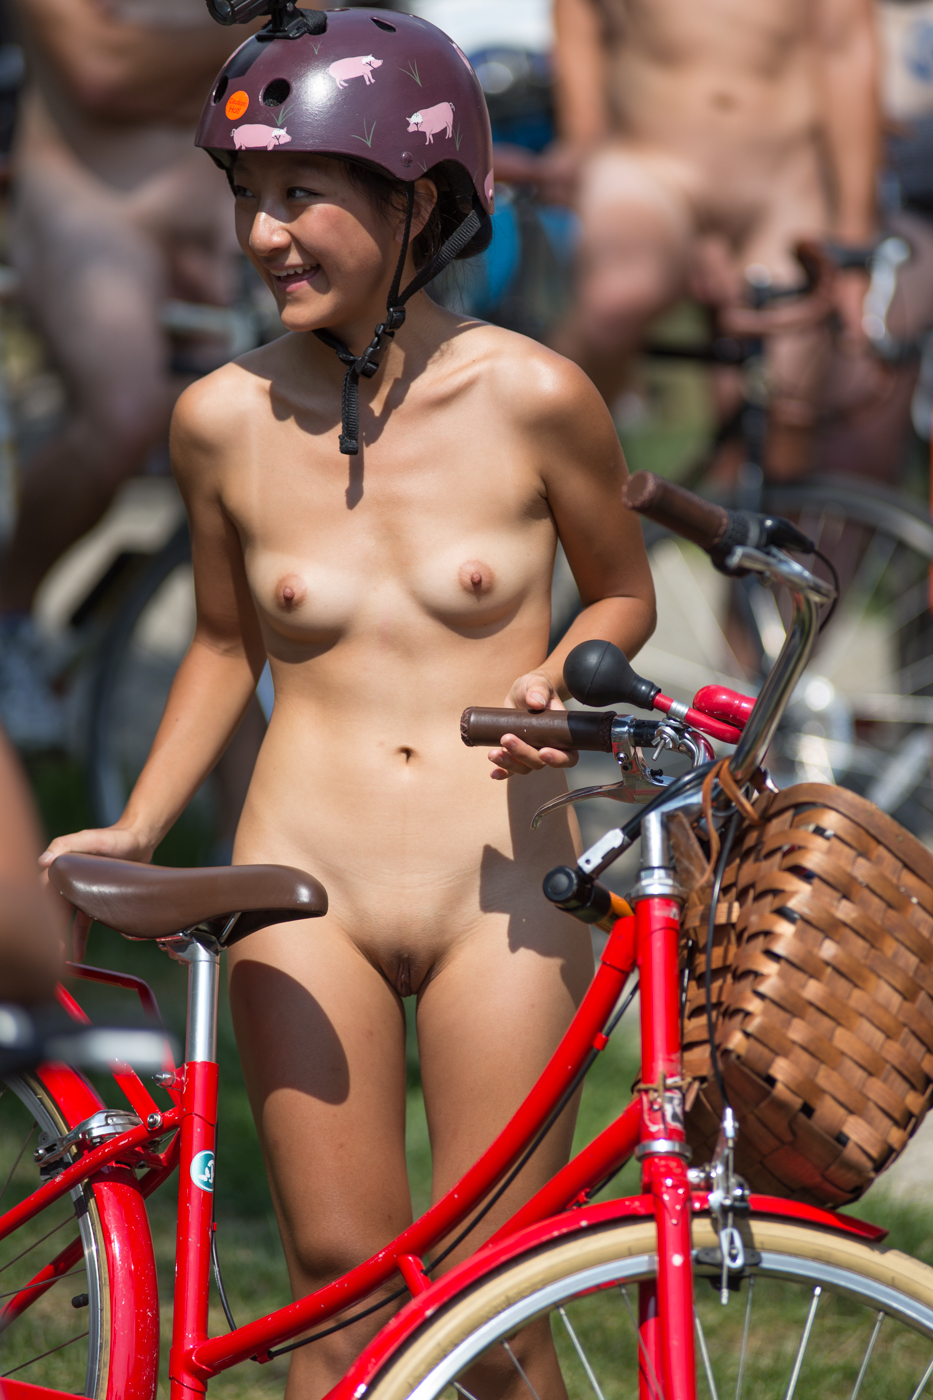 Asian riding bikes nude have